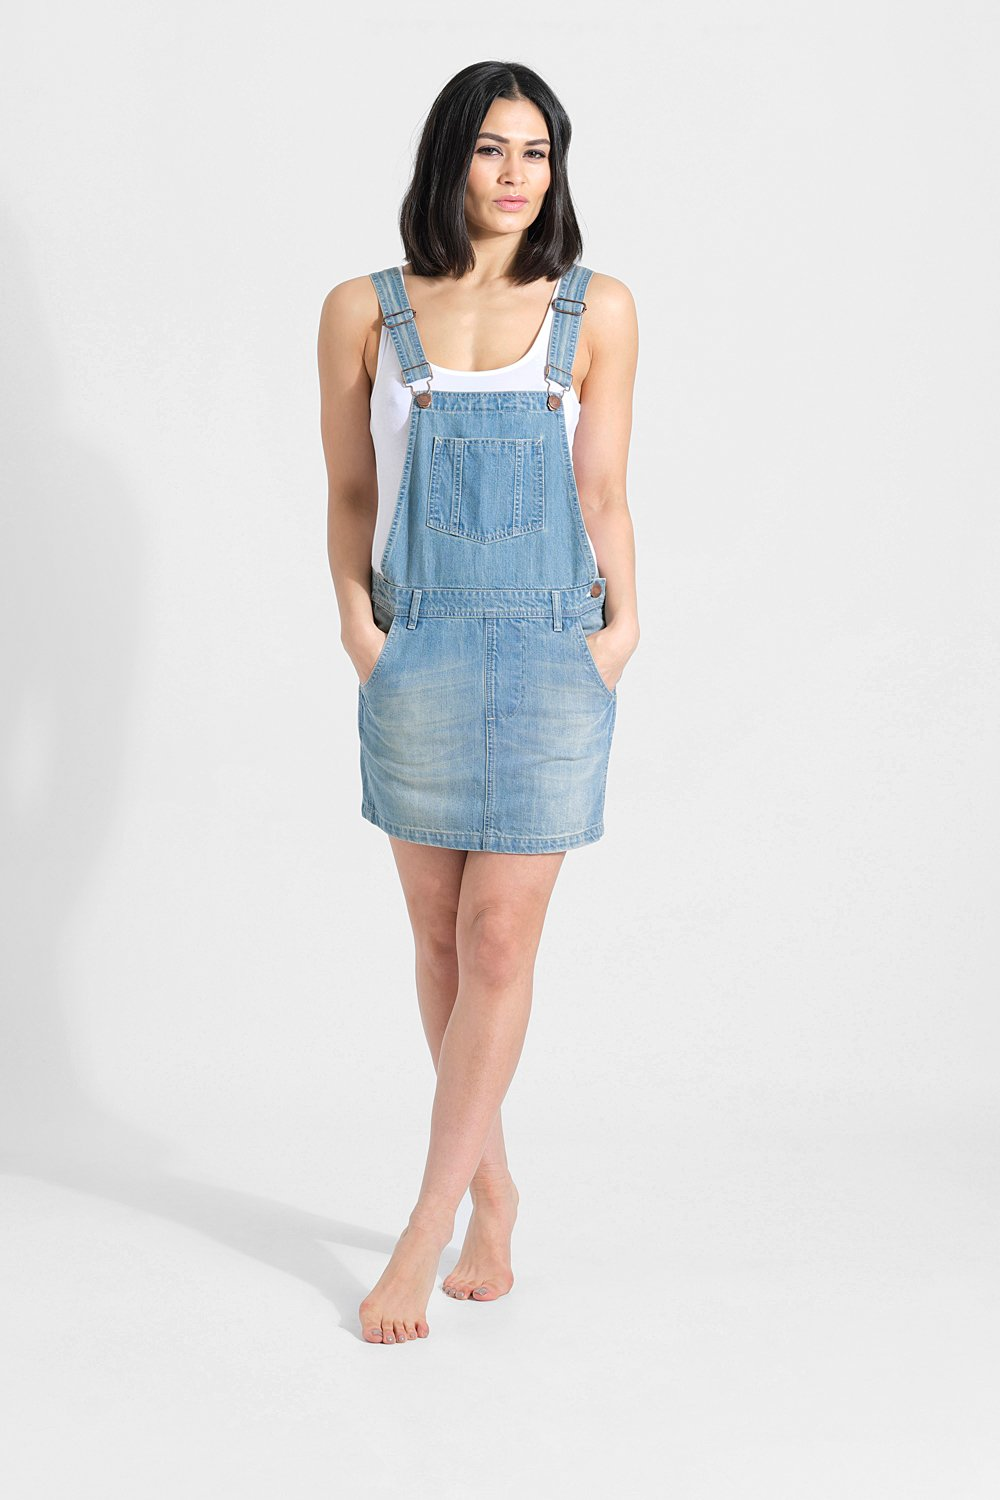 Slightly distant, full frontal pose looking straight ahead with hands in pockets and legs crossed, wearing denim overall dress from Dungarees Online.